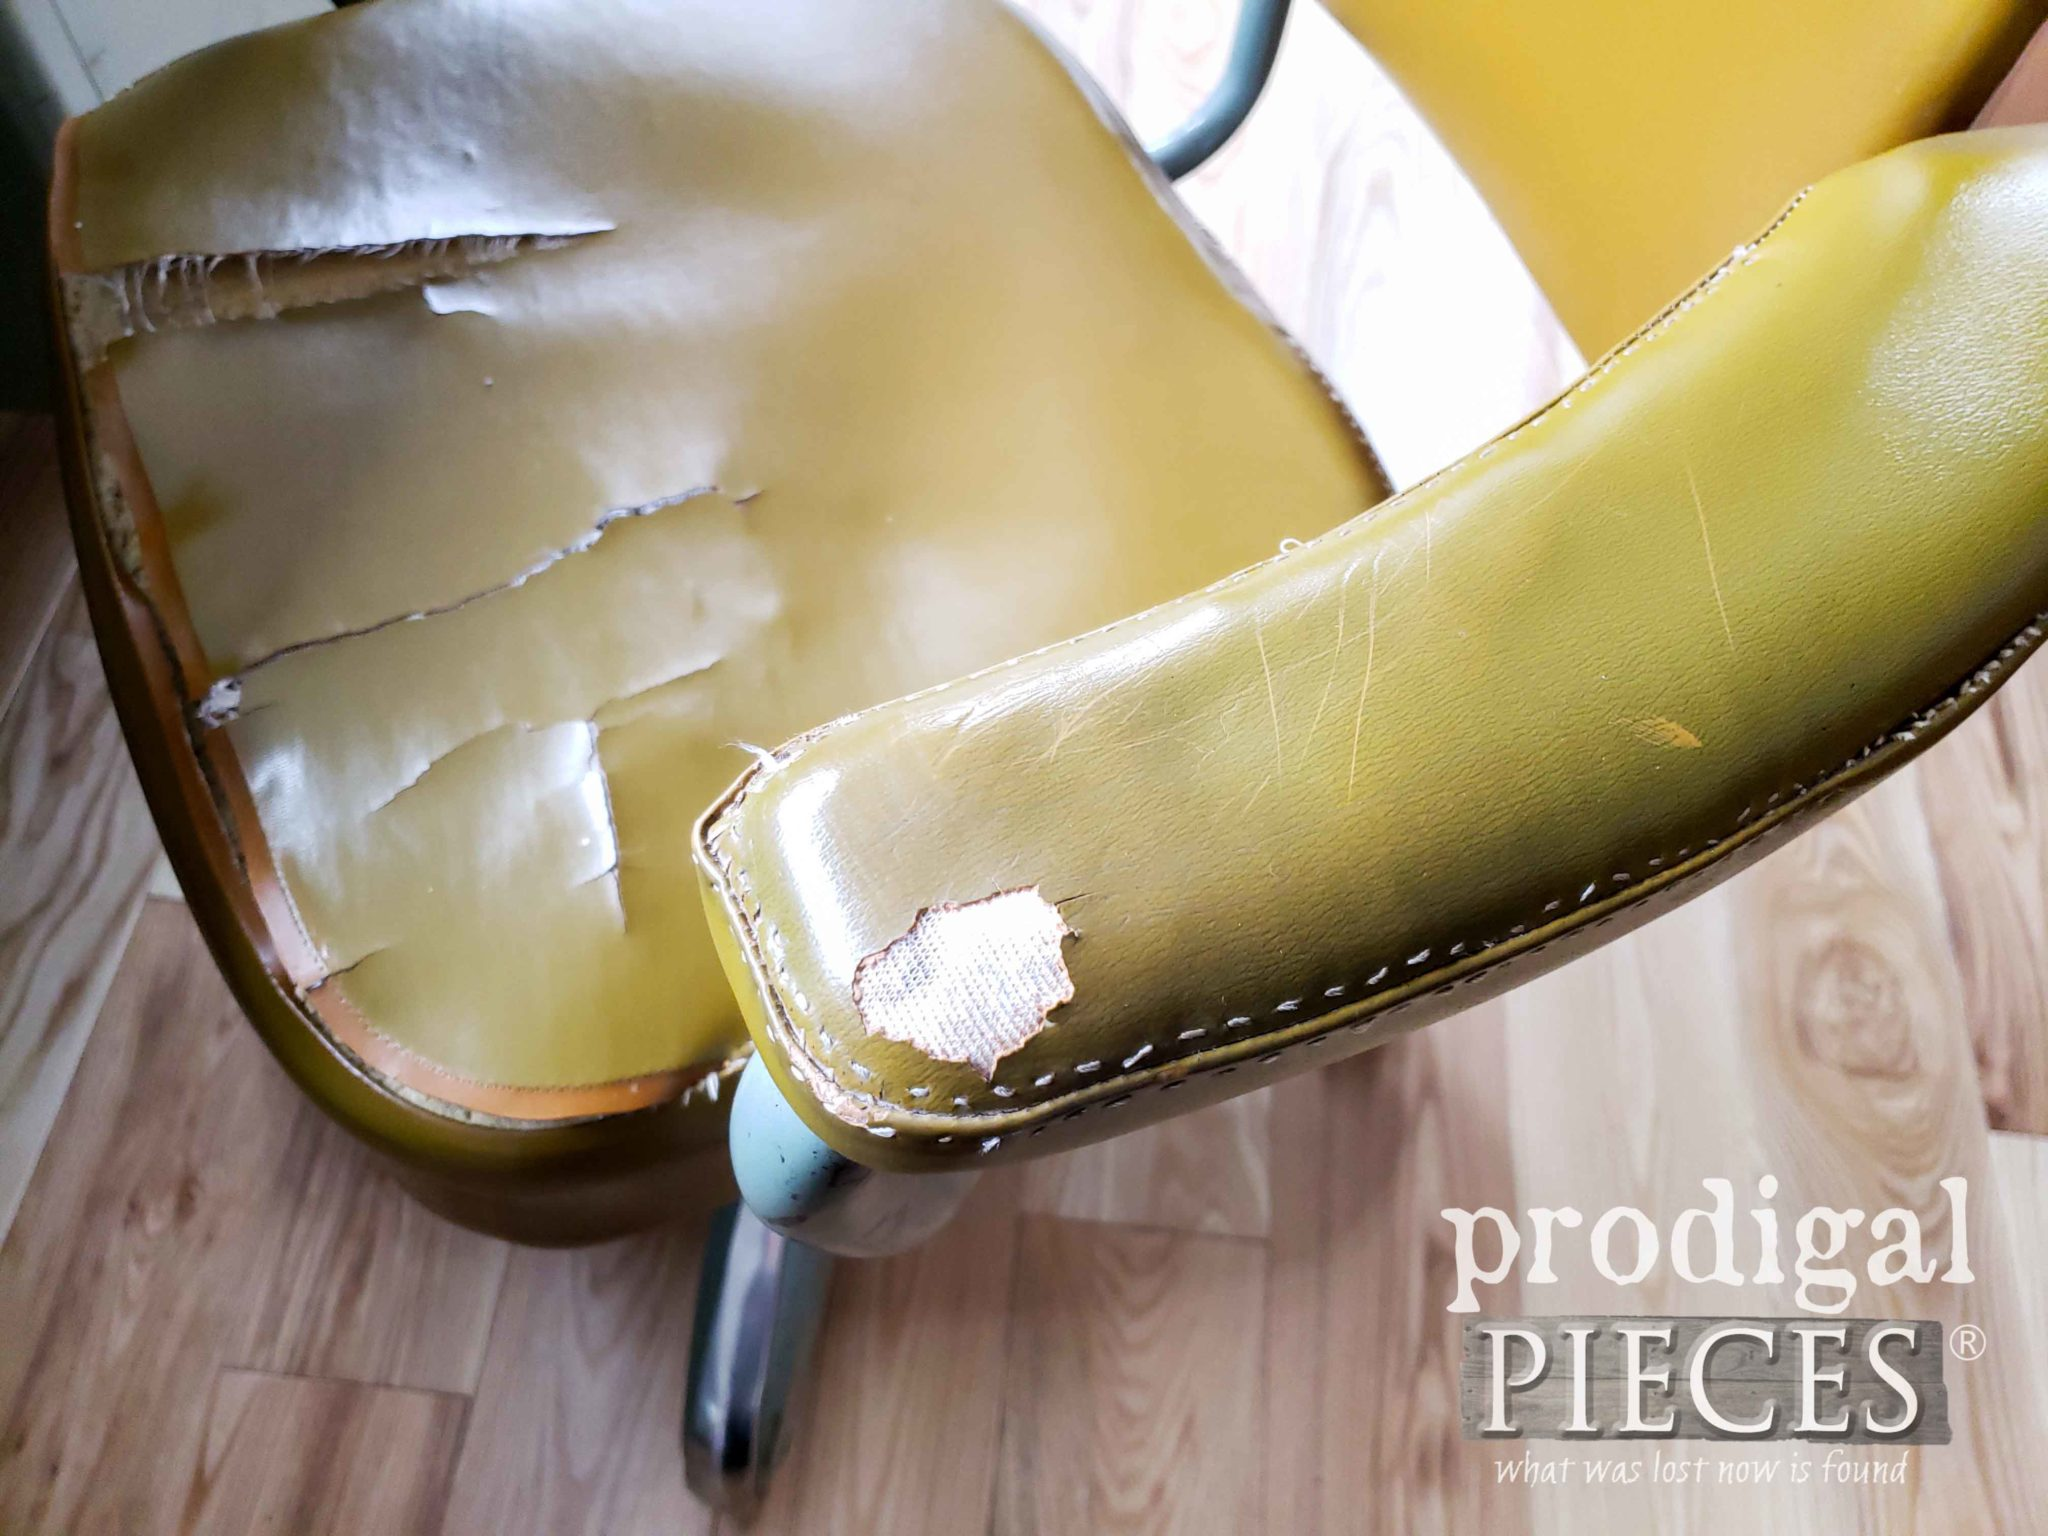 Vintage Desk Chair Damage | prodigalpieces.com